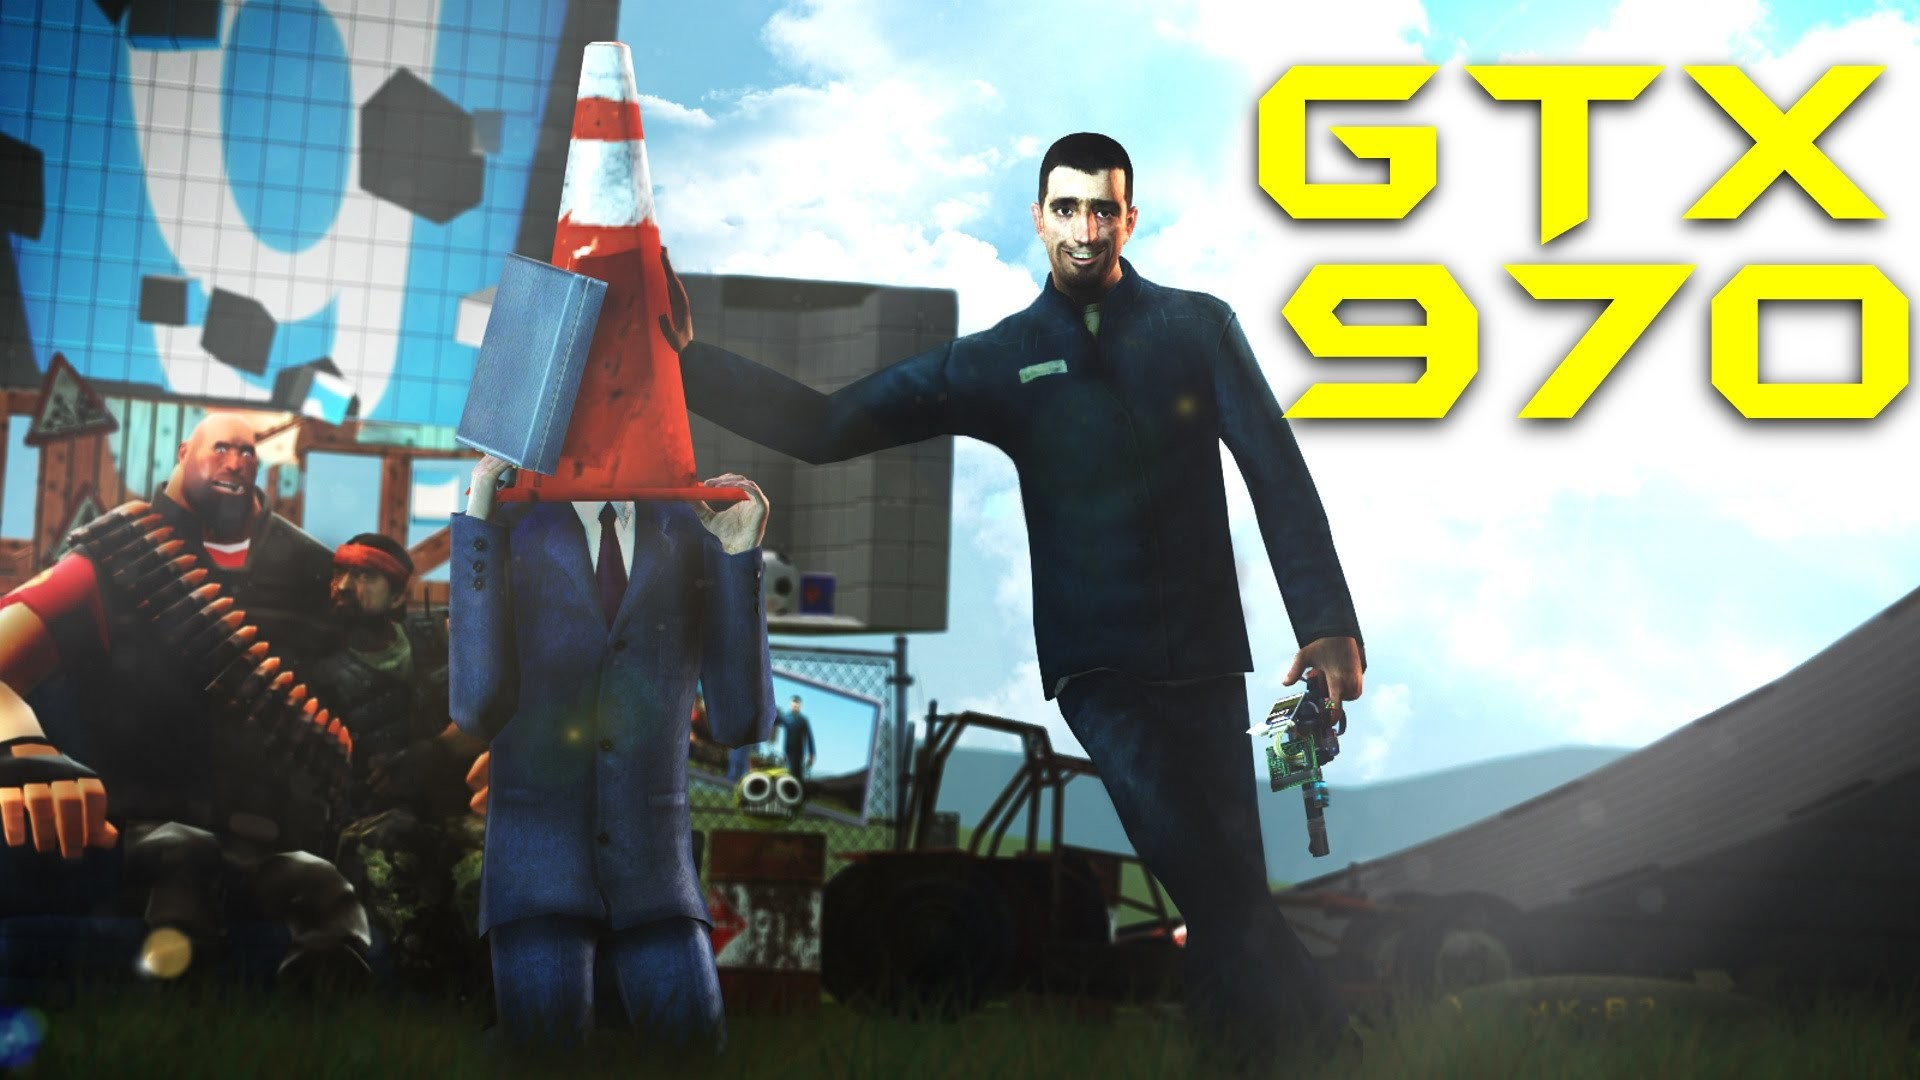 Res: 1920x1080, Garry's Mod GTX 970 OC & i5 3570k OC 4,2Ghz | 1080p Maxed Out | FRAME-RATE  TEST - YouTube